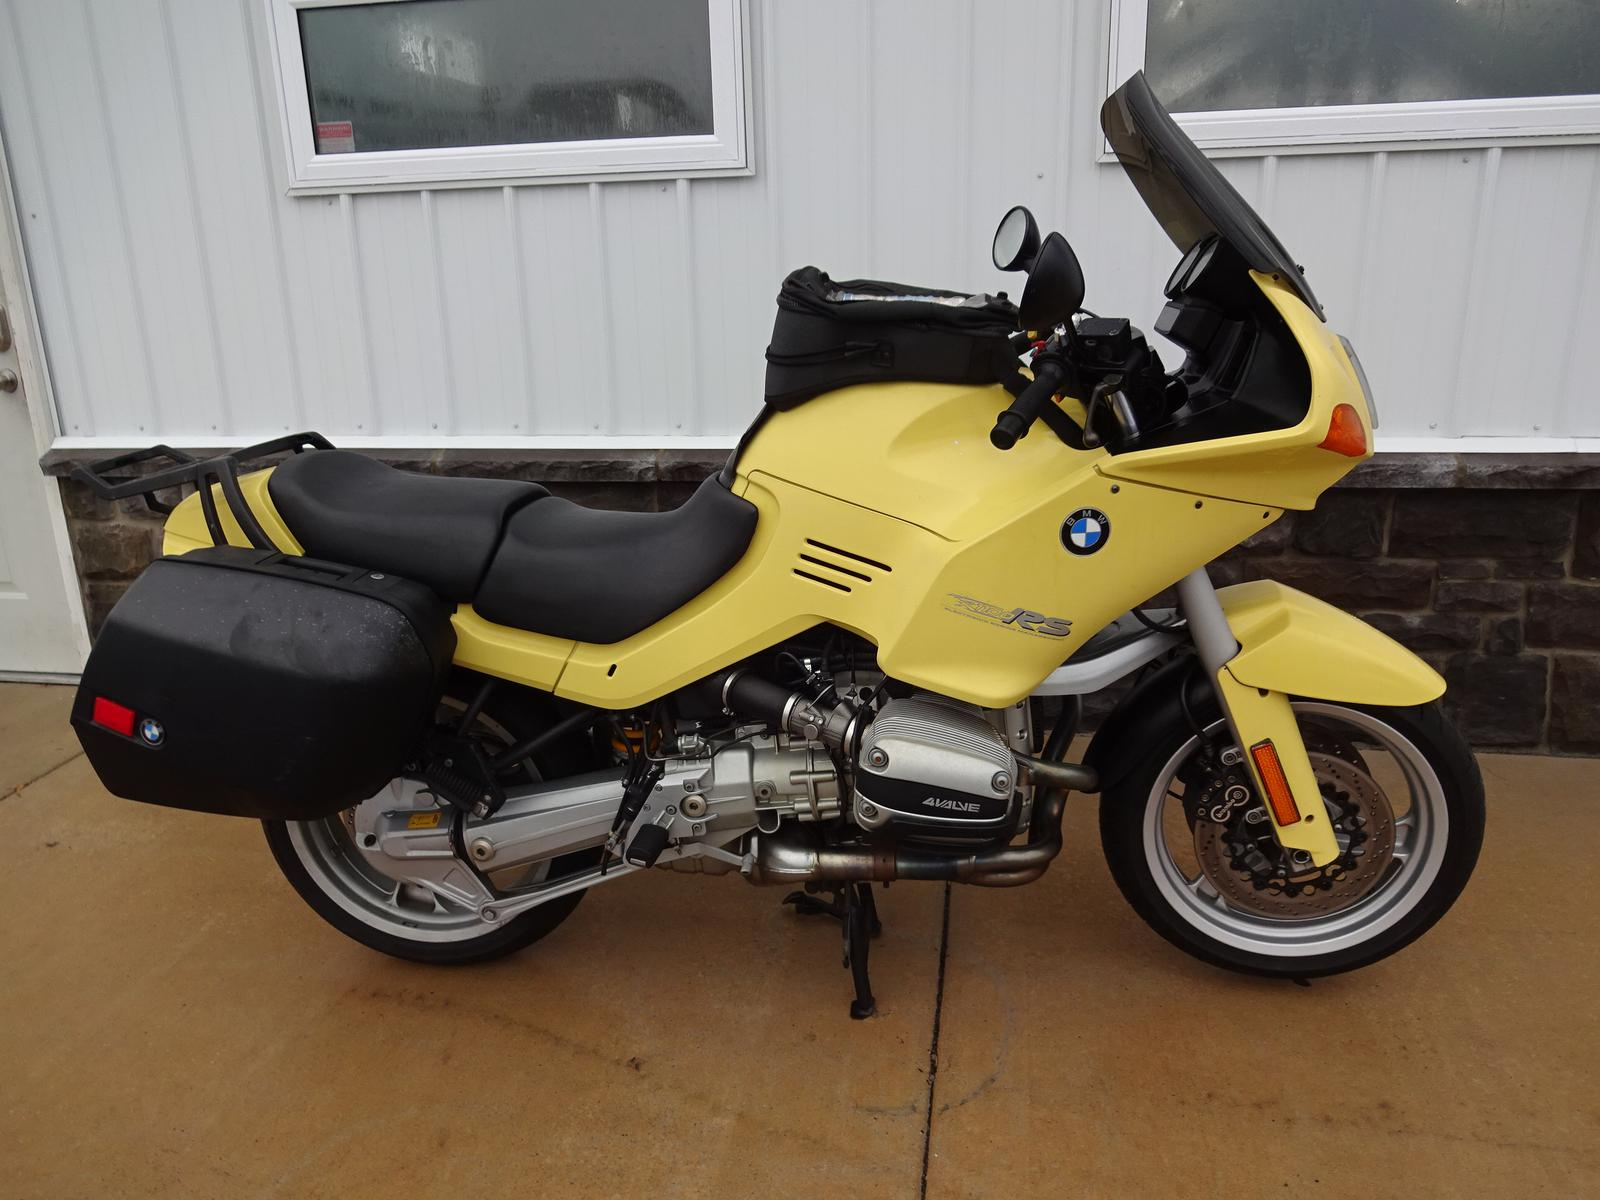 1995 bmw r1100rs for sale in grand rapids, mi   bmw motorcycles of